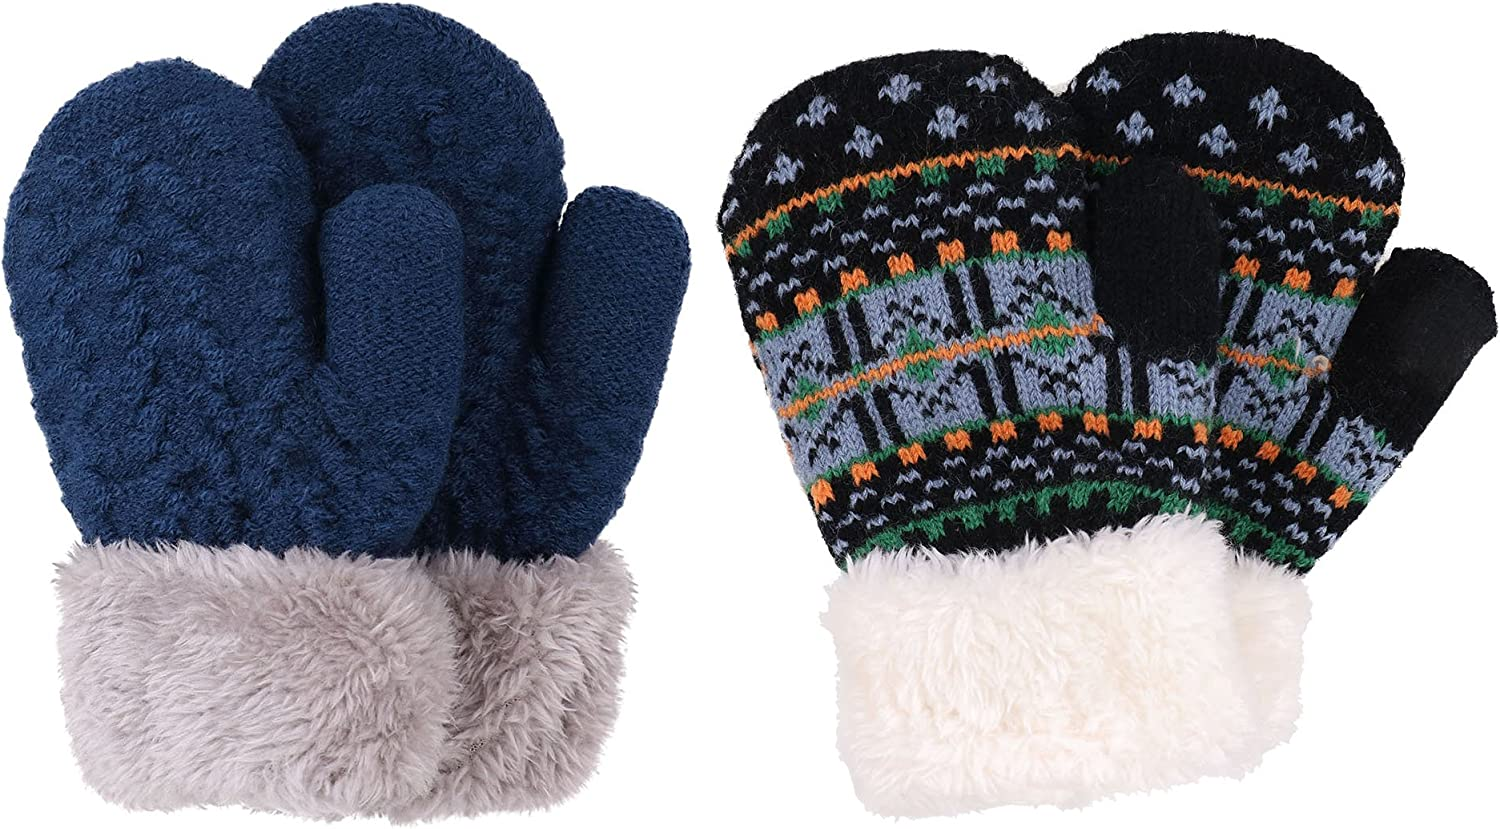 Arctic Paw 3 Pairs Kids Sherpa Lined Knit Mittens Boys Girls Winter Gloves